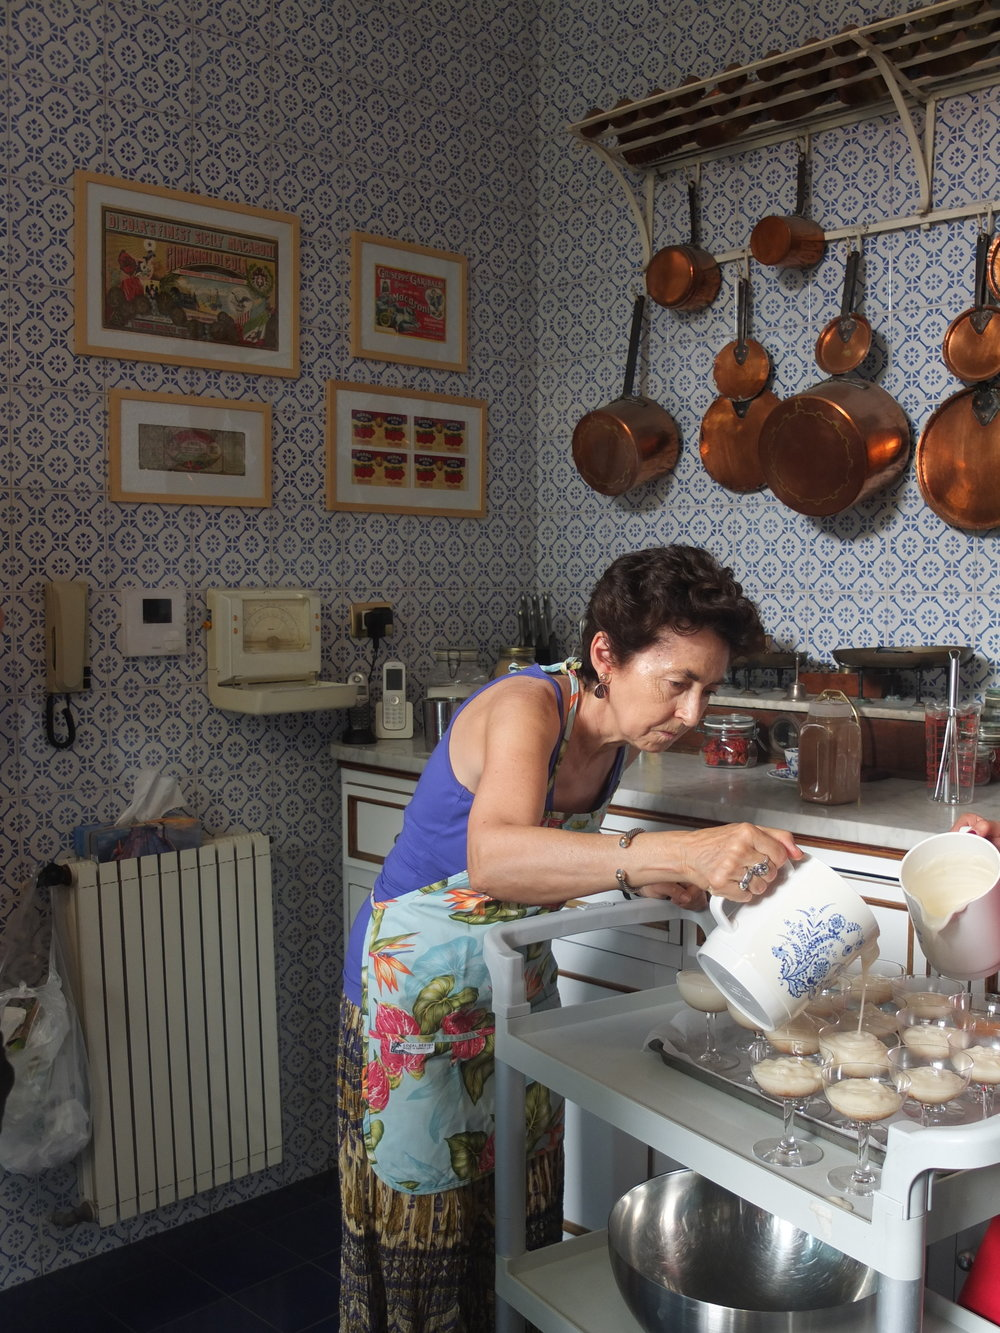 A SICILIAN DUCHESS IS TEACHING A COOKING CLASS TO RESTORE AN 18TH-CENTURY PALAZZO